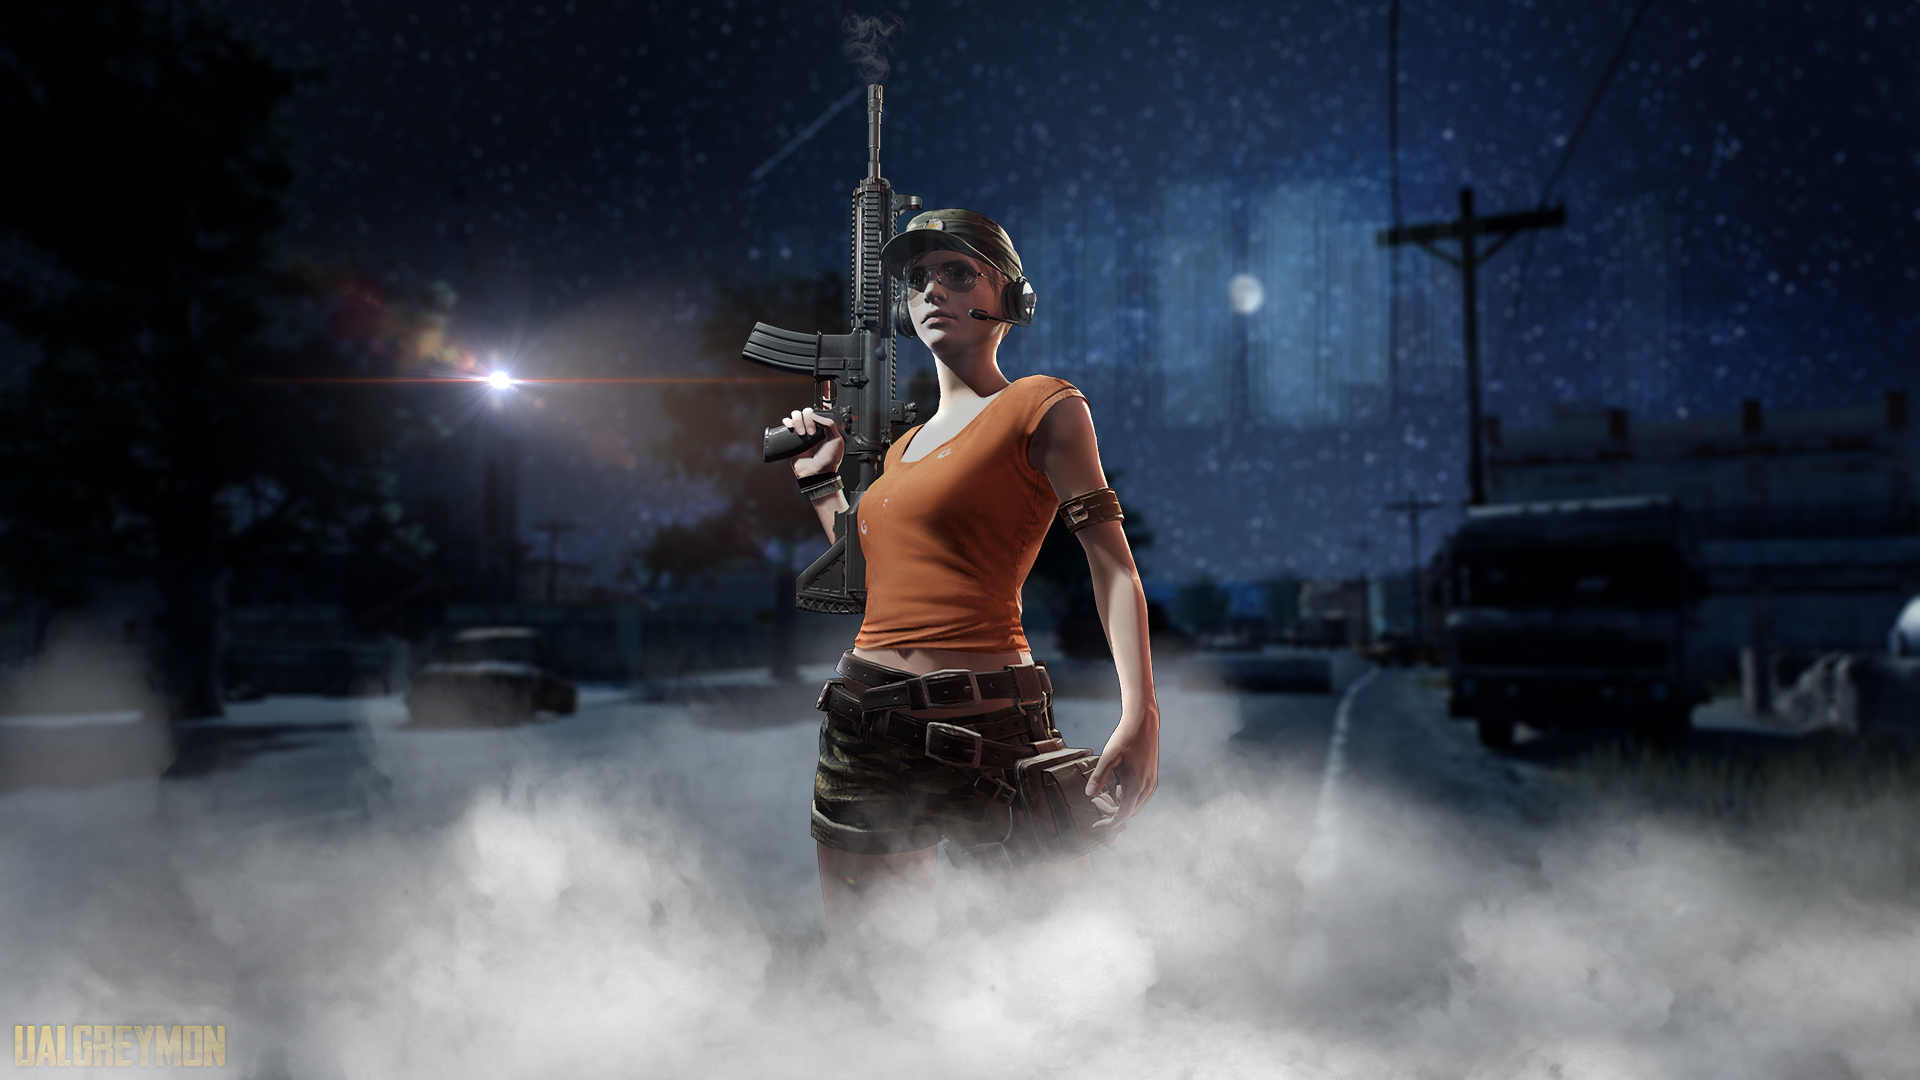 1920x1080 Pubg Characters 4k Laptop Full Hd 1080p Hd 4k: 1920x1080 Pubg Night Laptop Full HD 1080P HD 4k Wallpapers